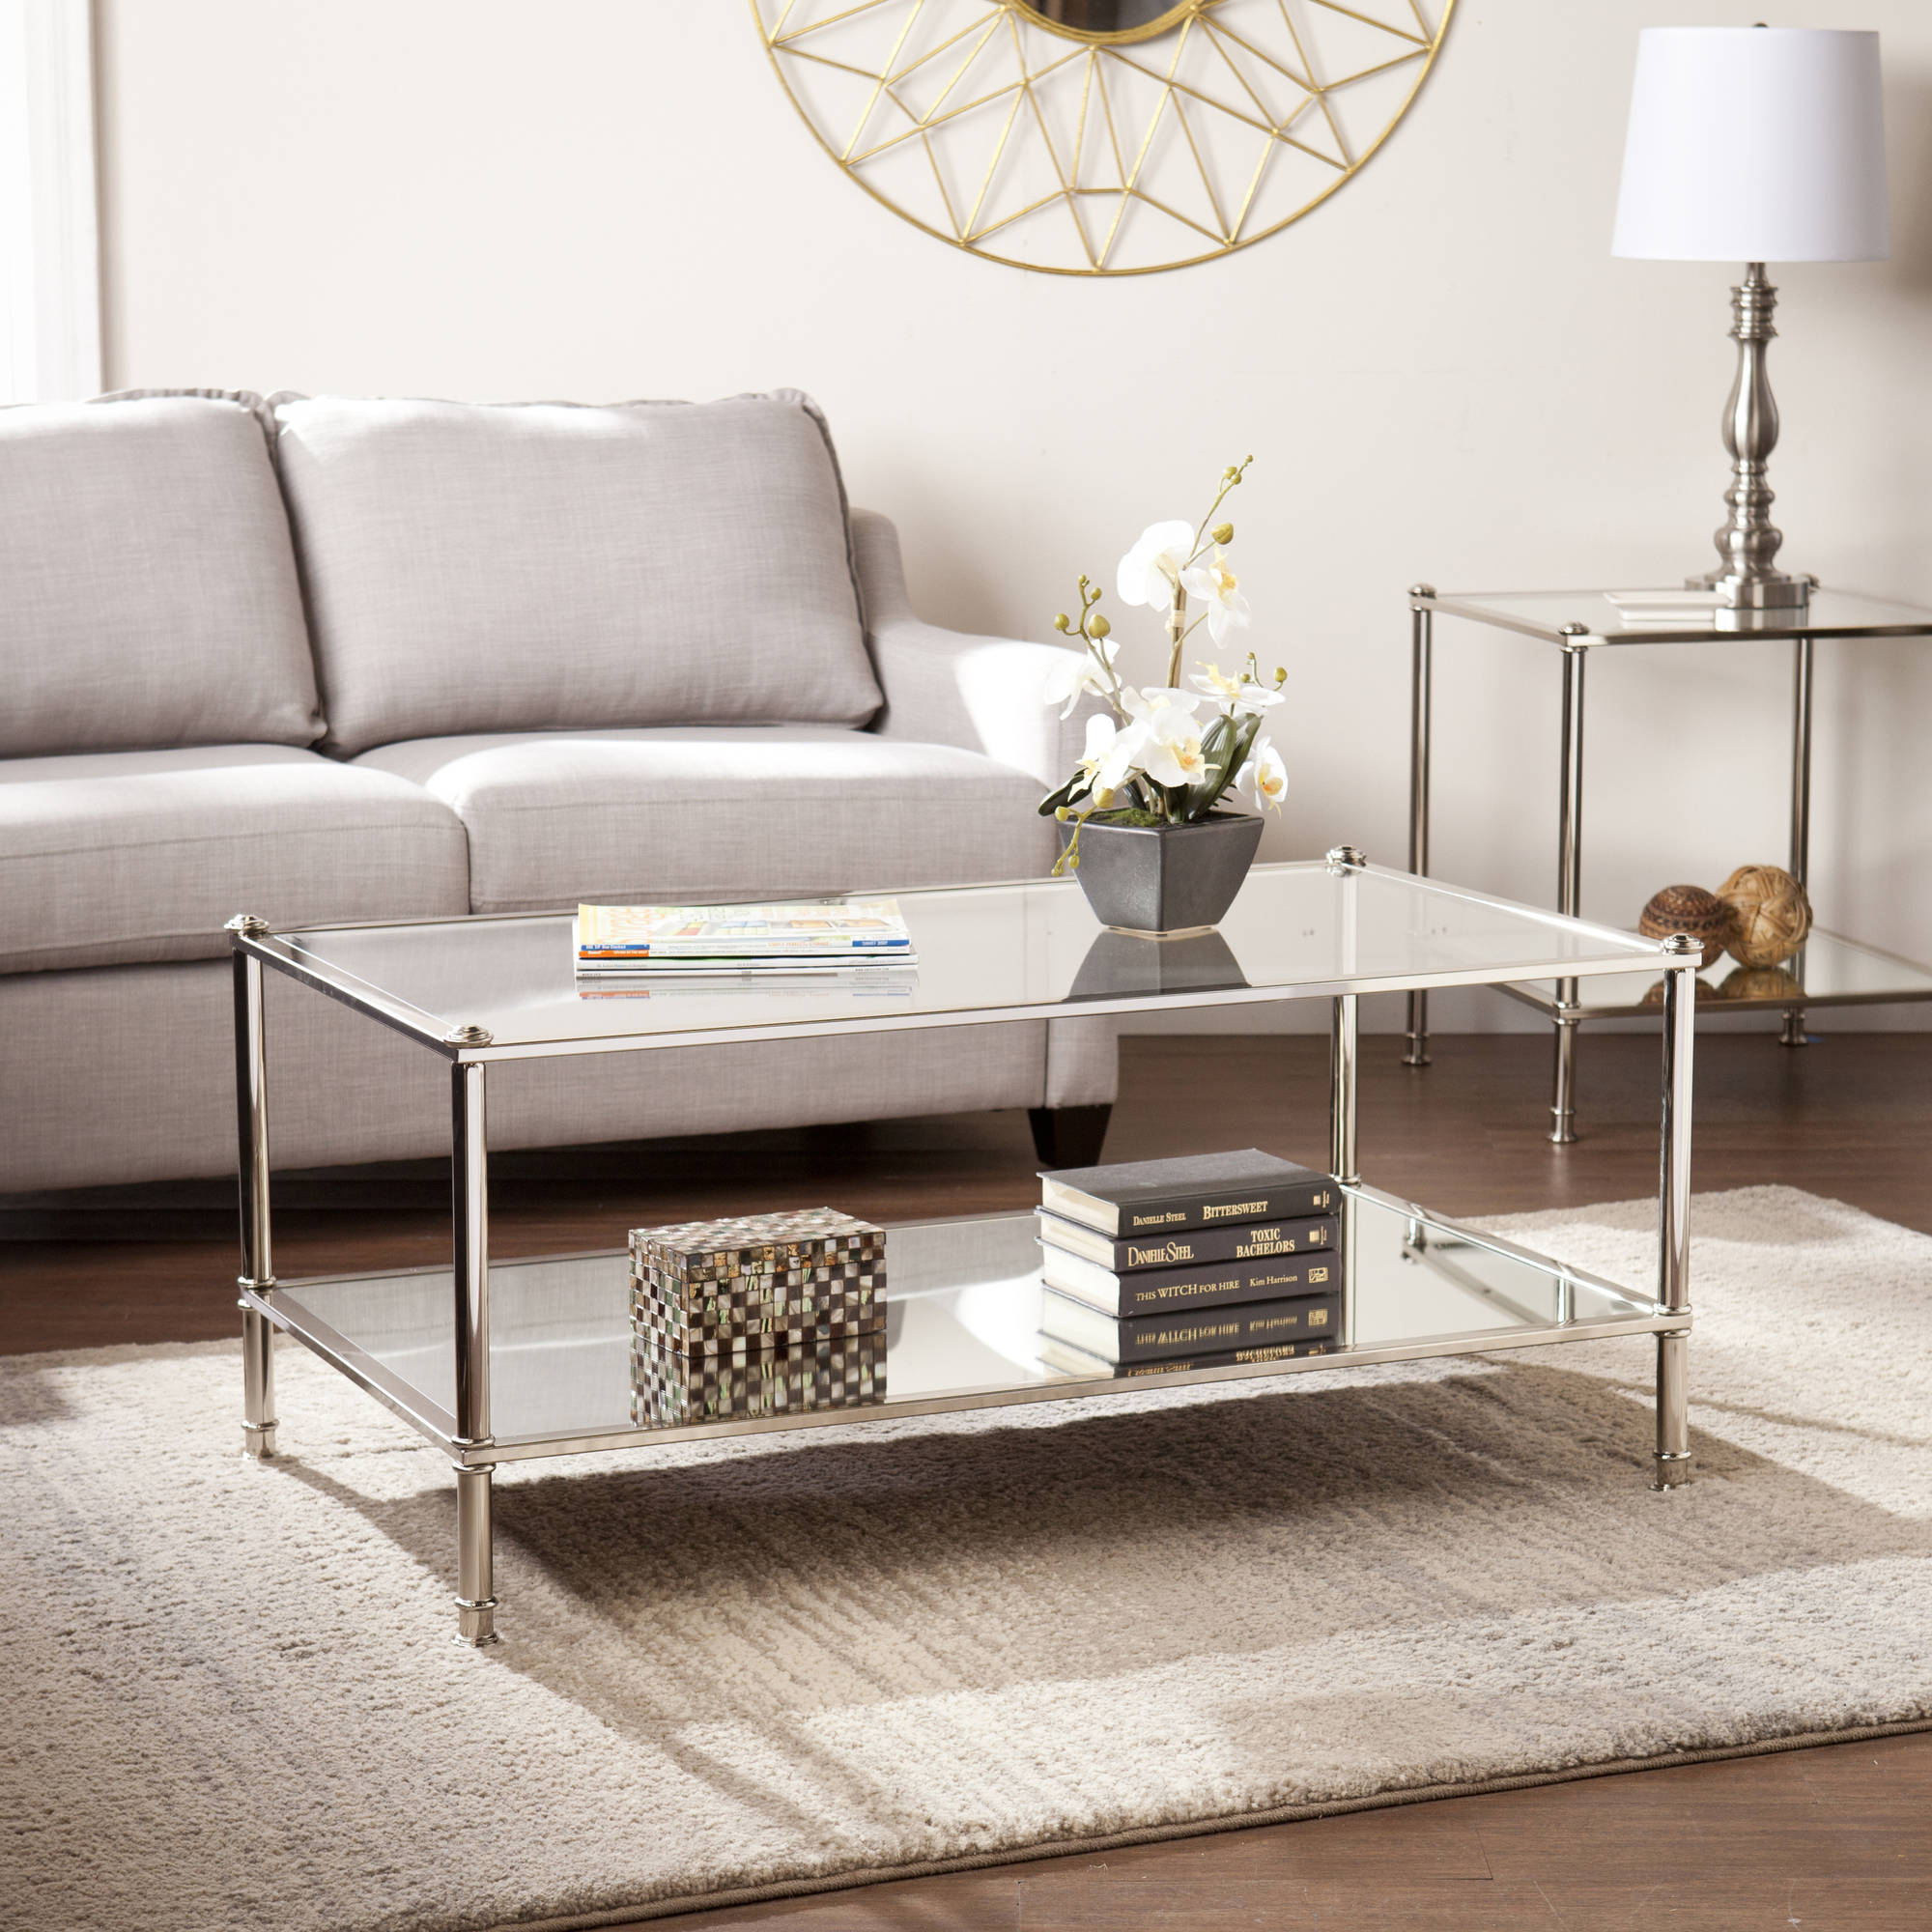 Southern Enterprises Parell Metal And Glass Coffee Table, Metallic Silver